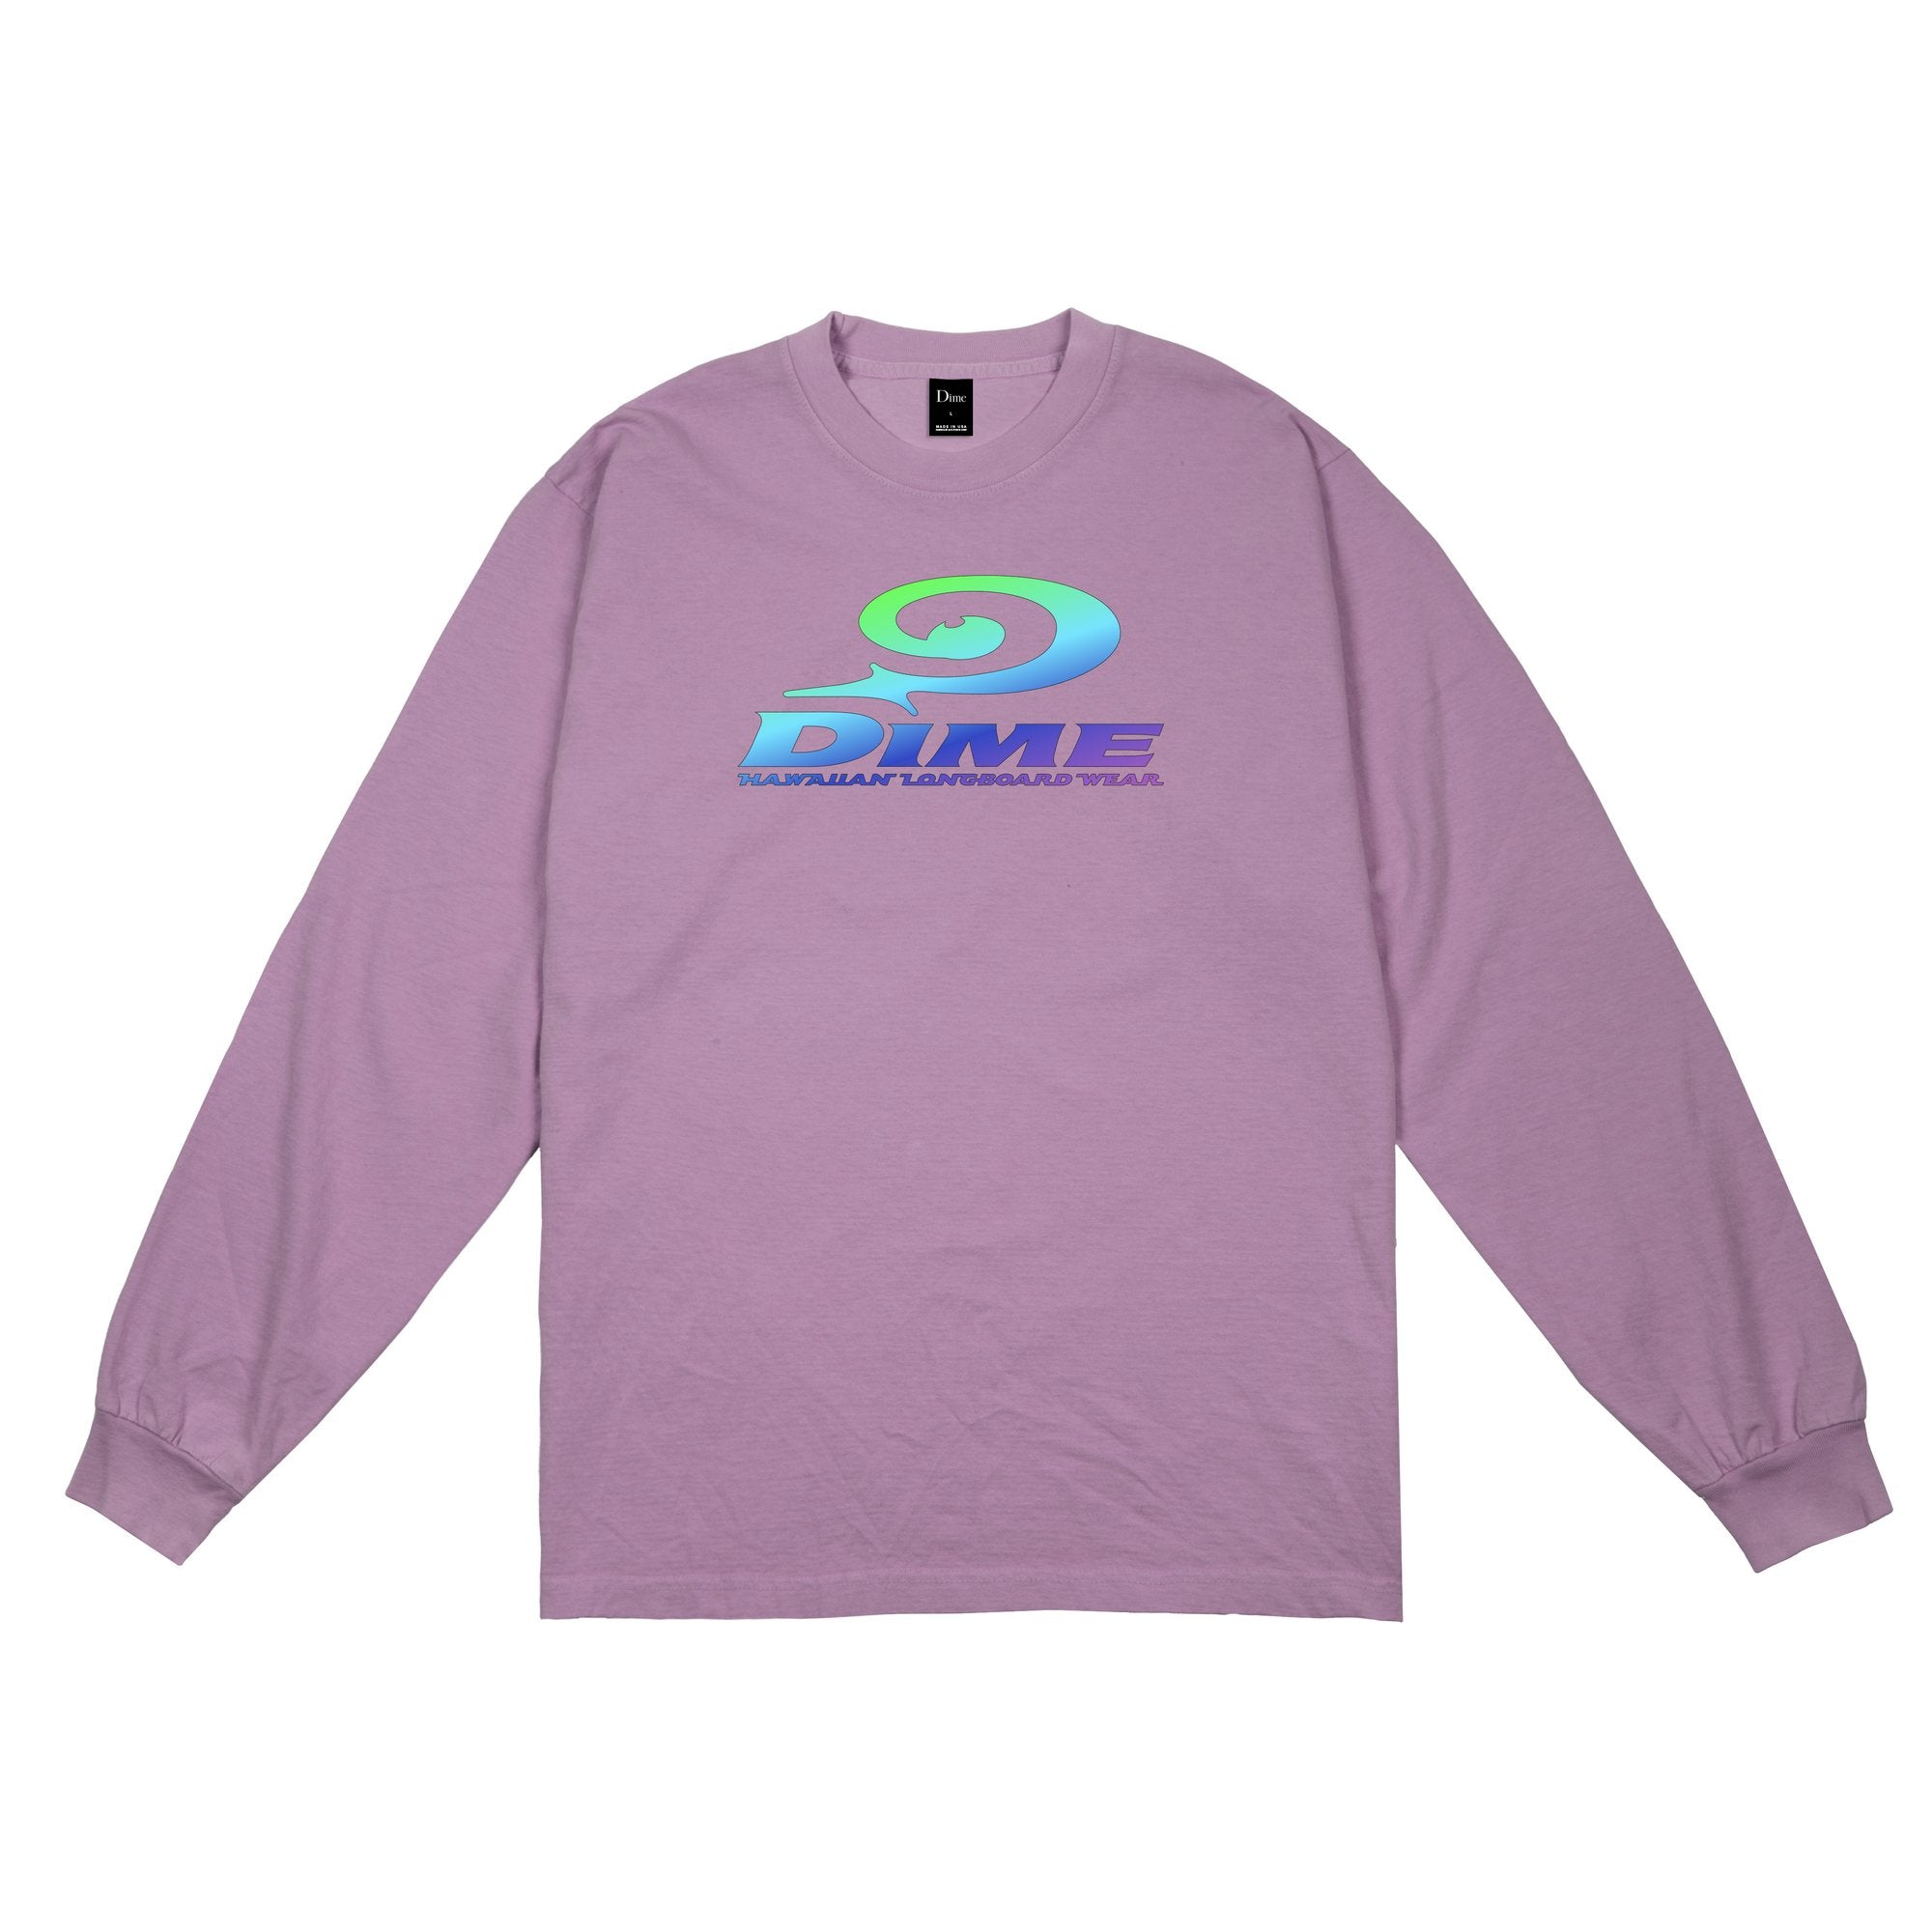 Dime Layback L/S Tee Product Photo #1